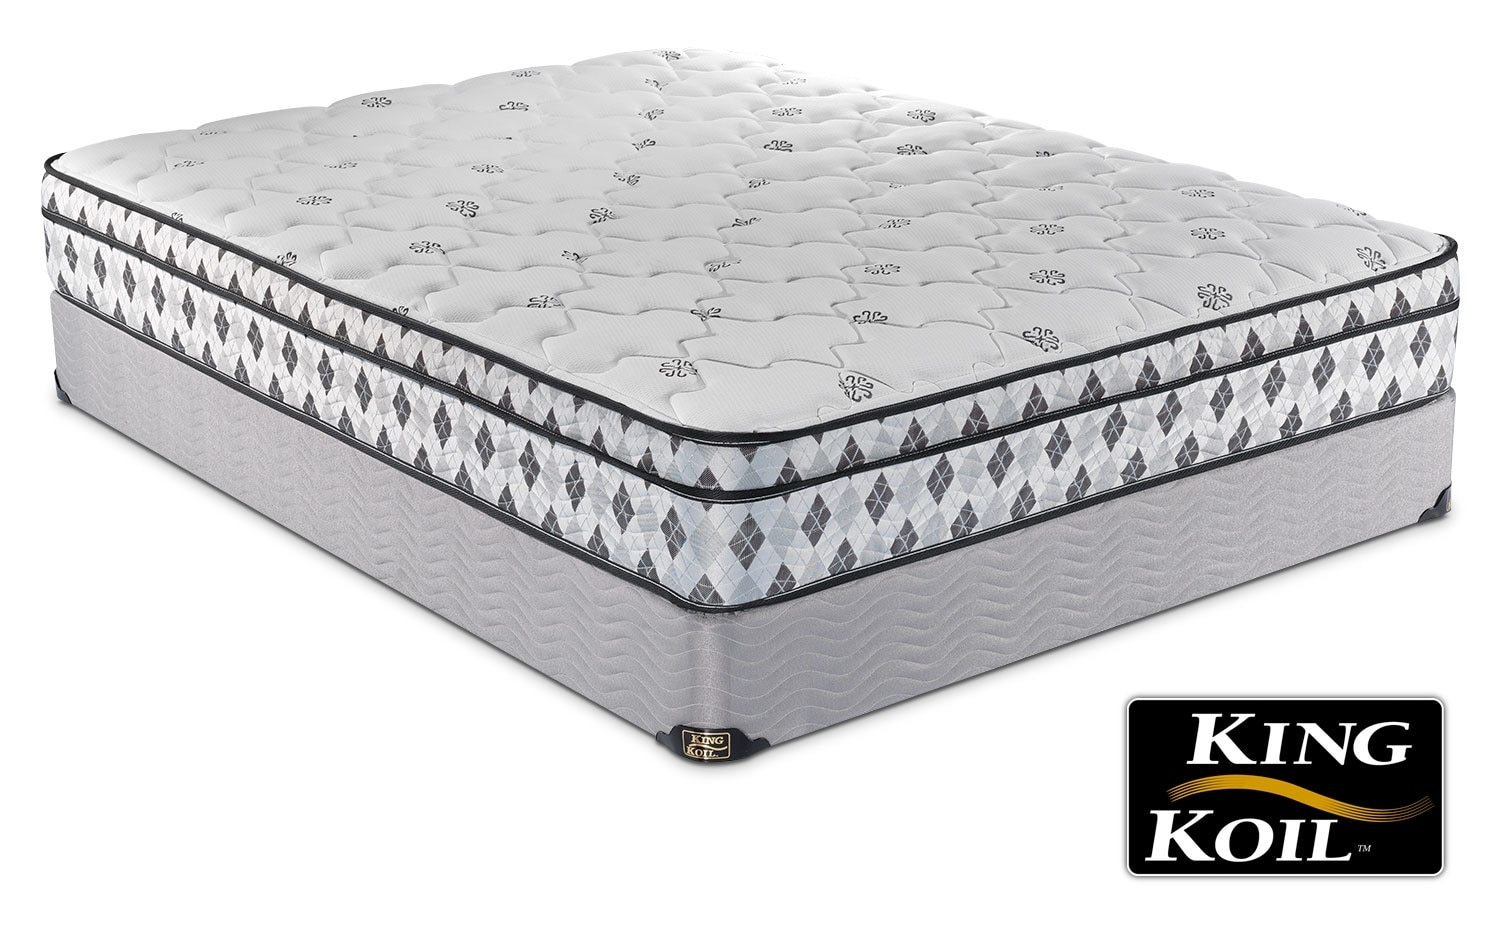 Mattresses and Bedding - King Koil Silent Night Full Mattress/Boxspring Set